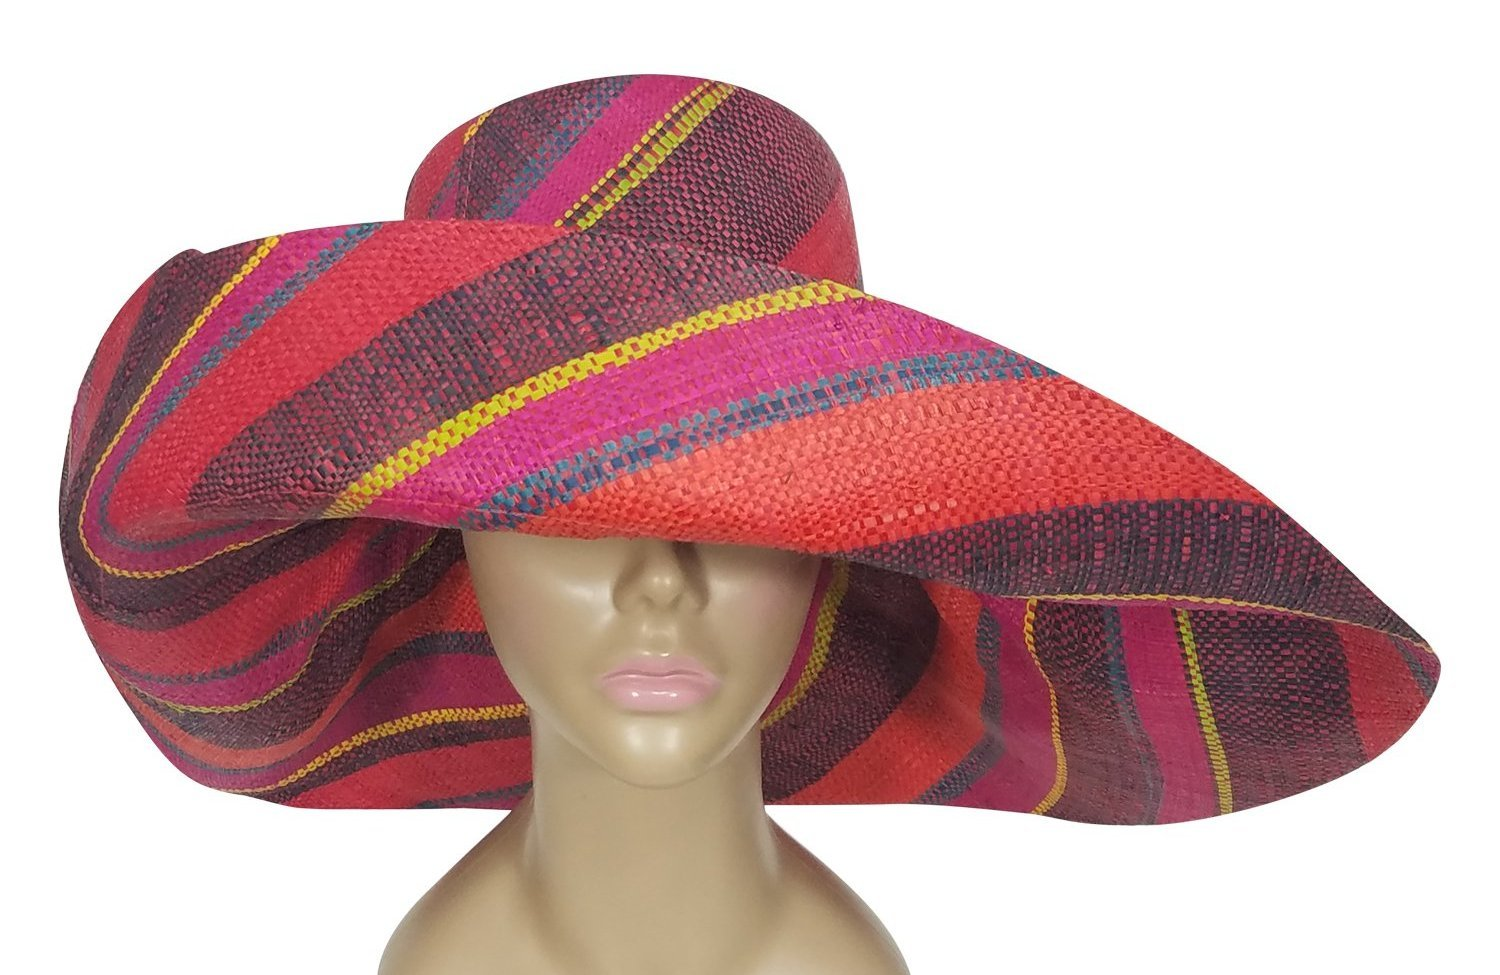 Bolade: Authntic African Hand Woven Multicolor Madagascar Big Brim Sun Hat by The Raffia Boutique